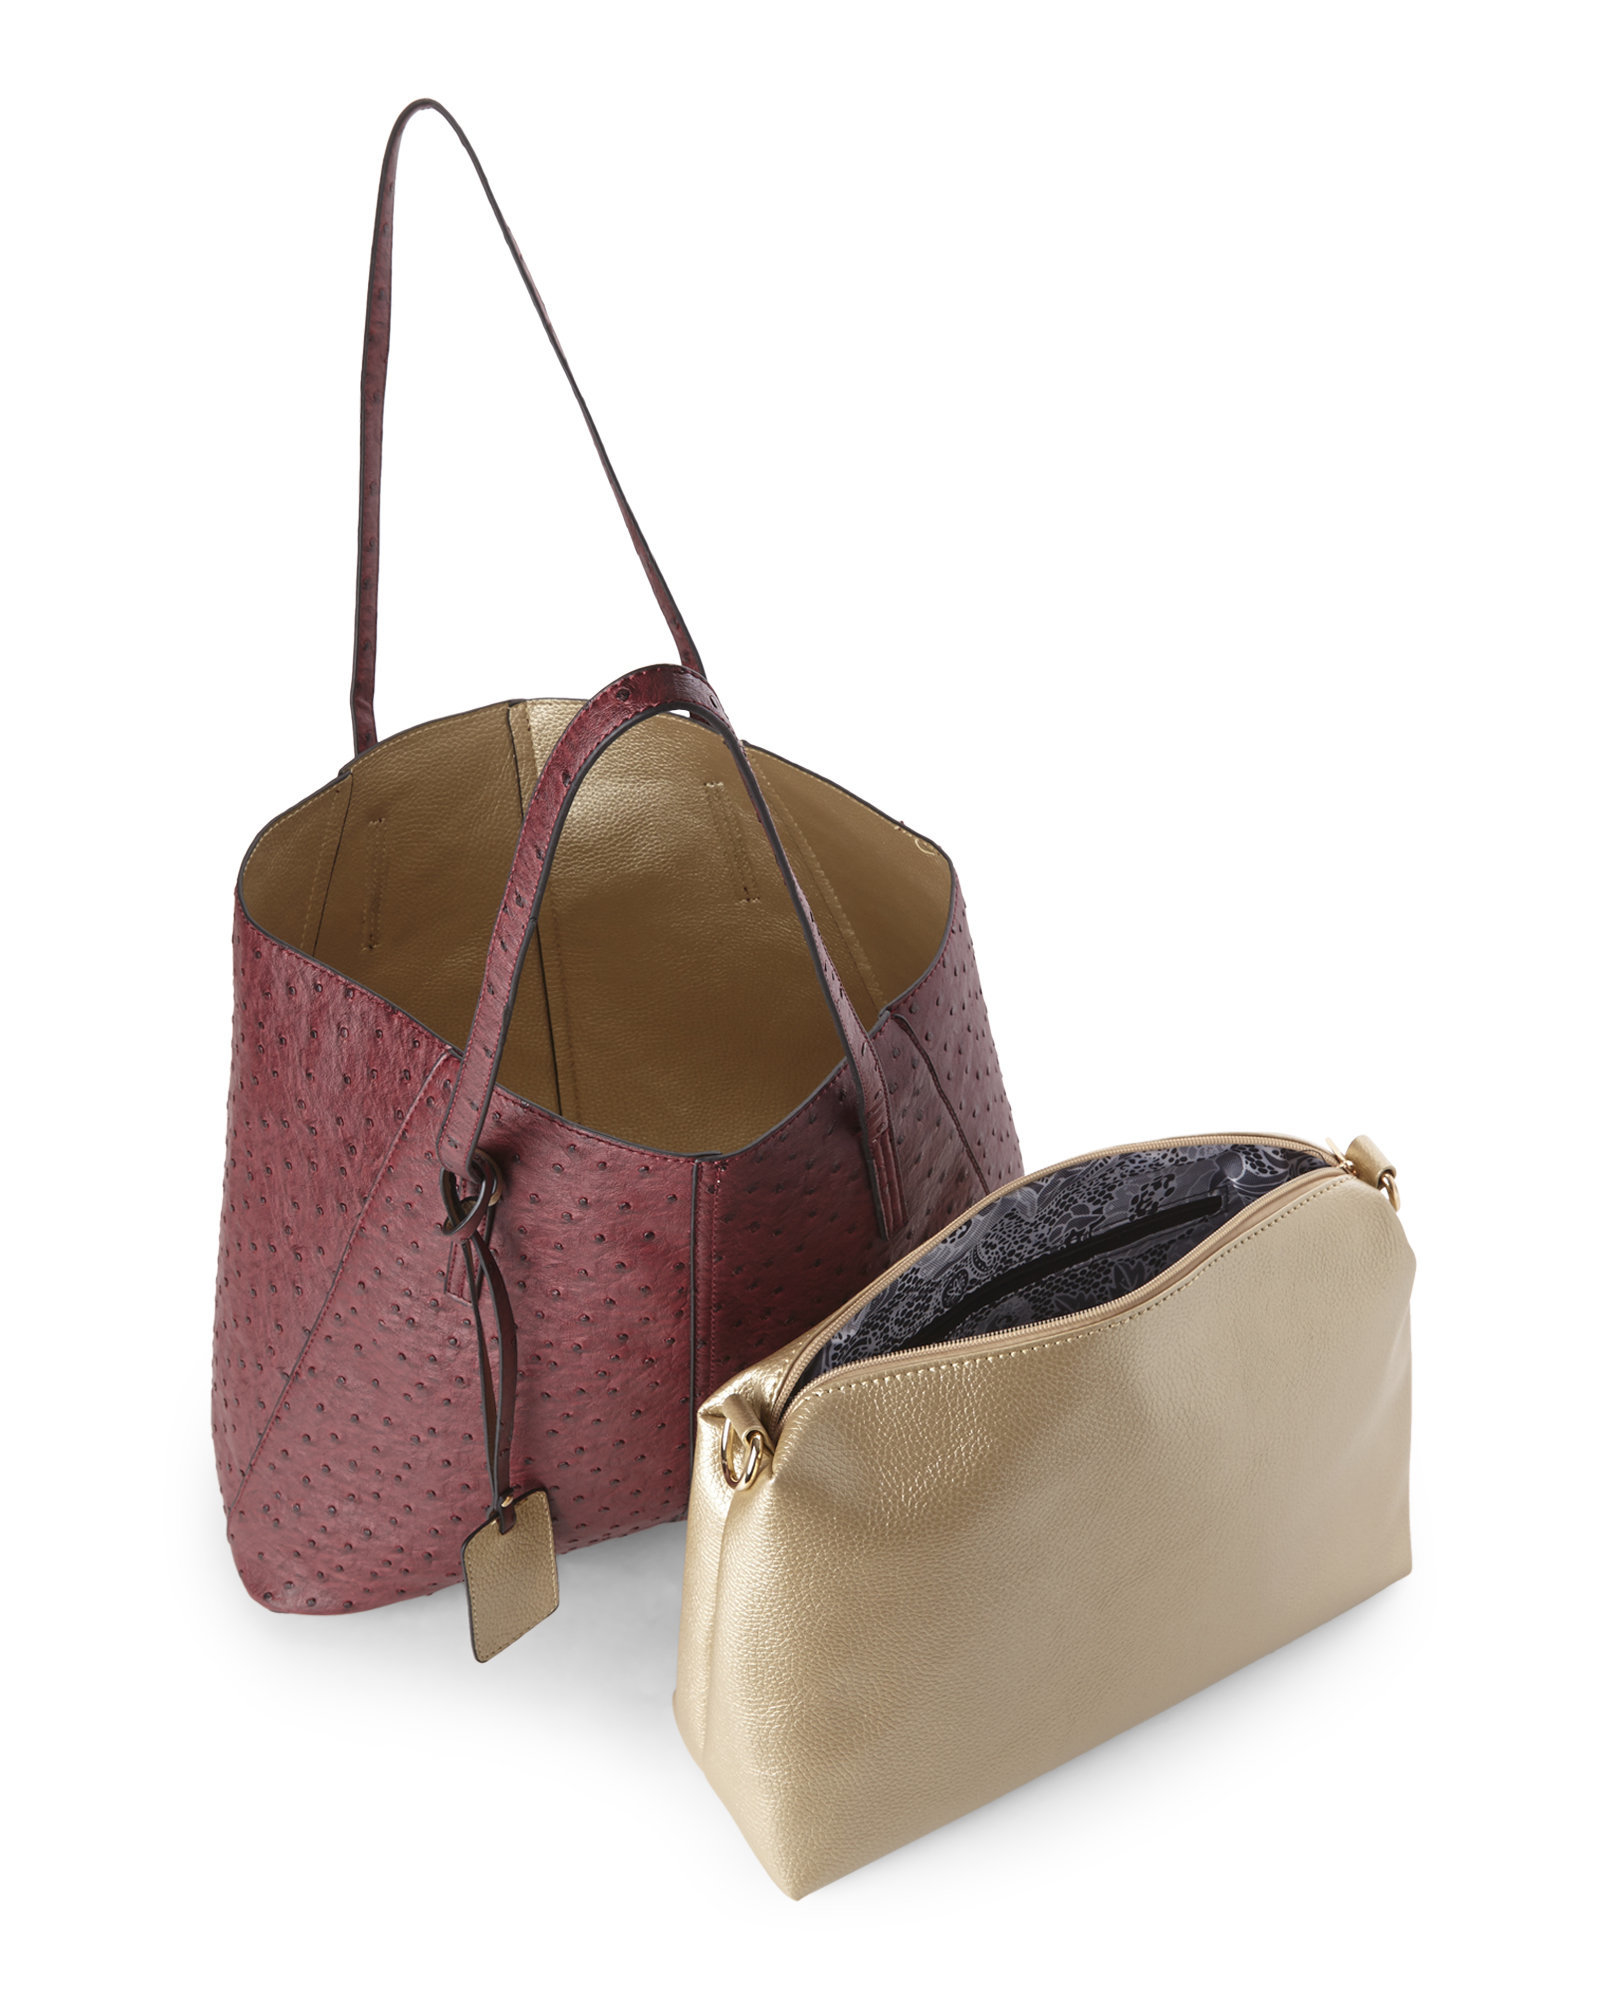 Reversible Purse Video: Imoshion Wine Ostrich & Gold Reversible Bag-In-Bag